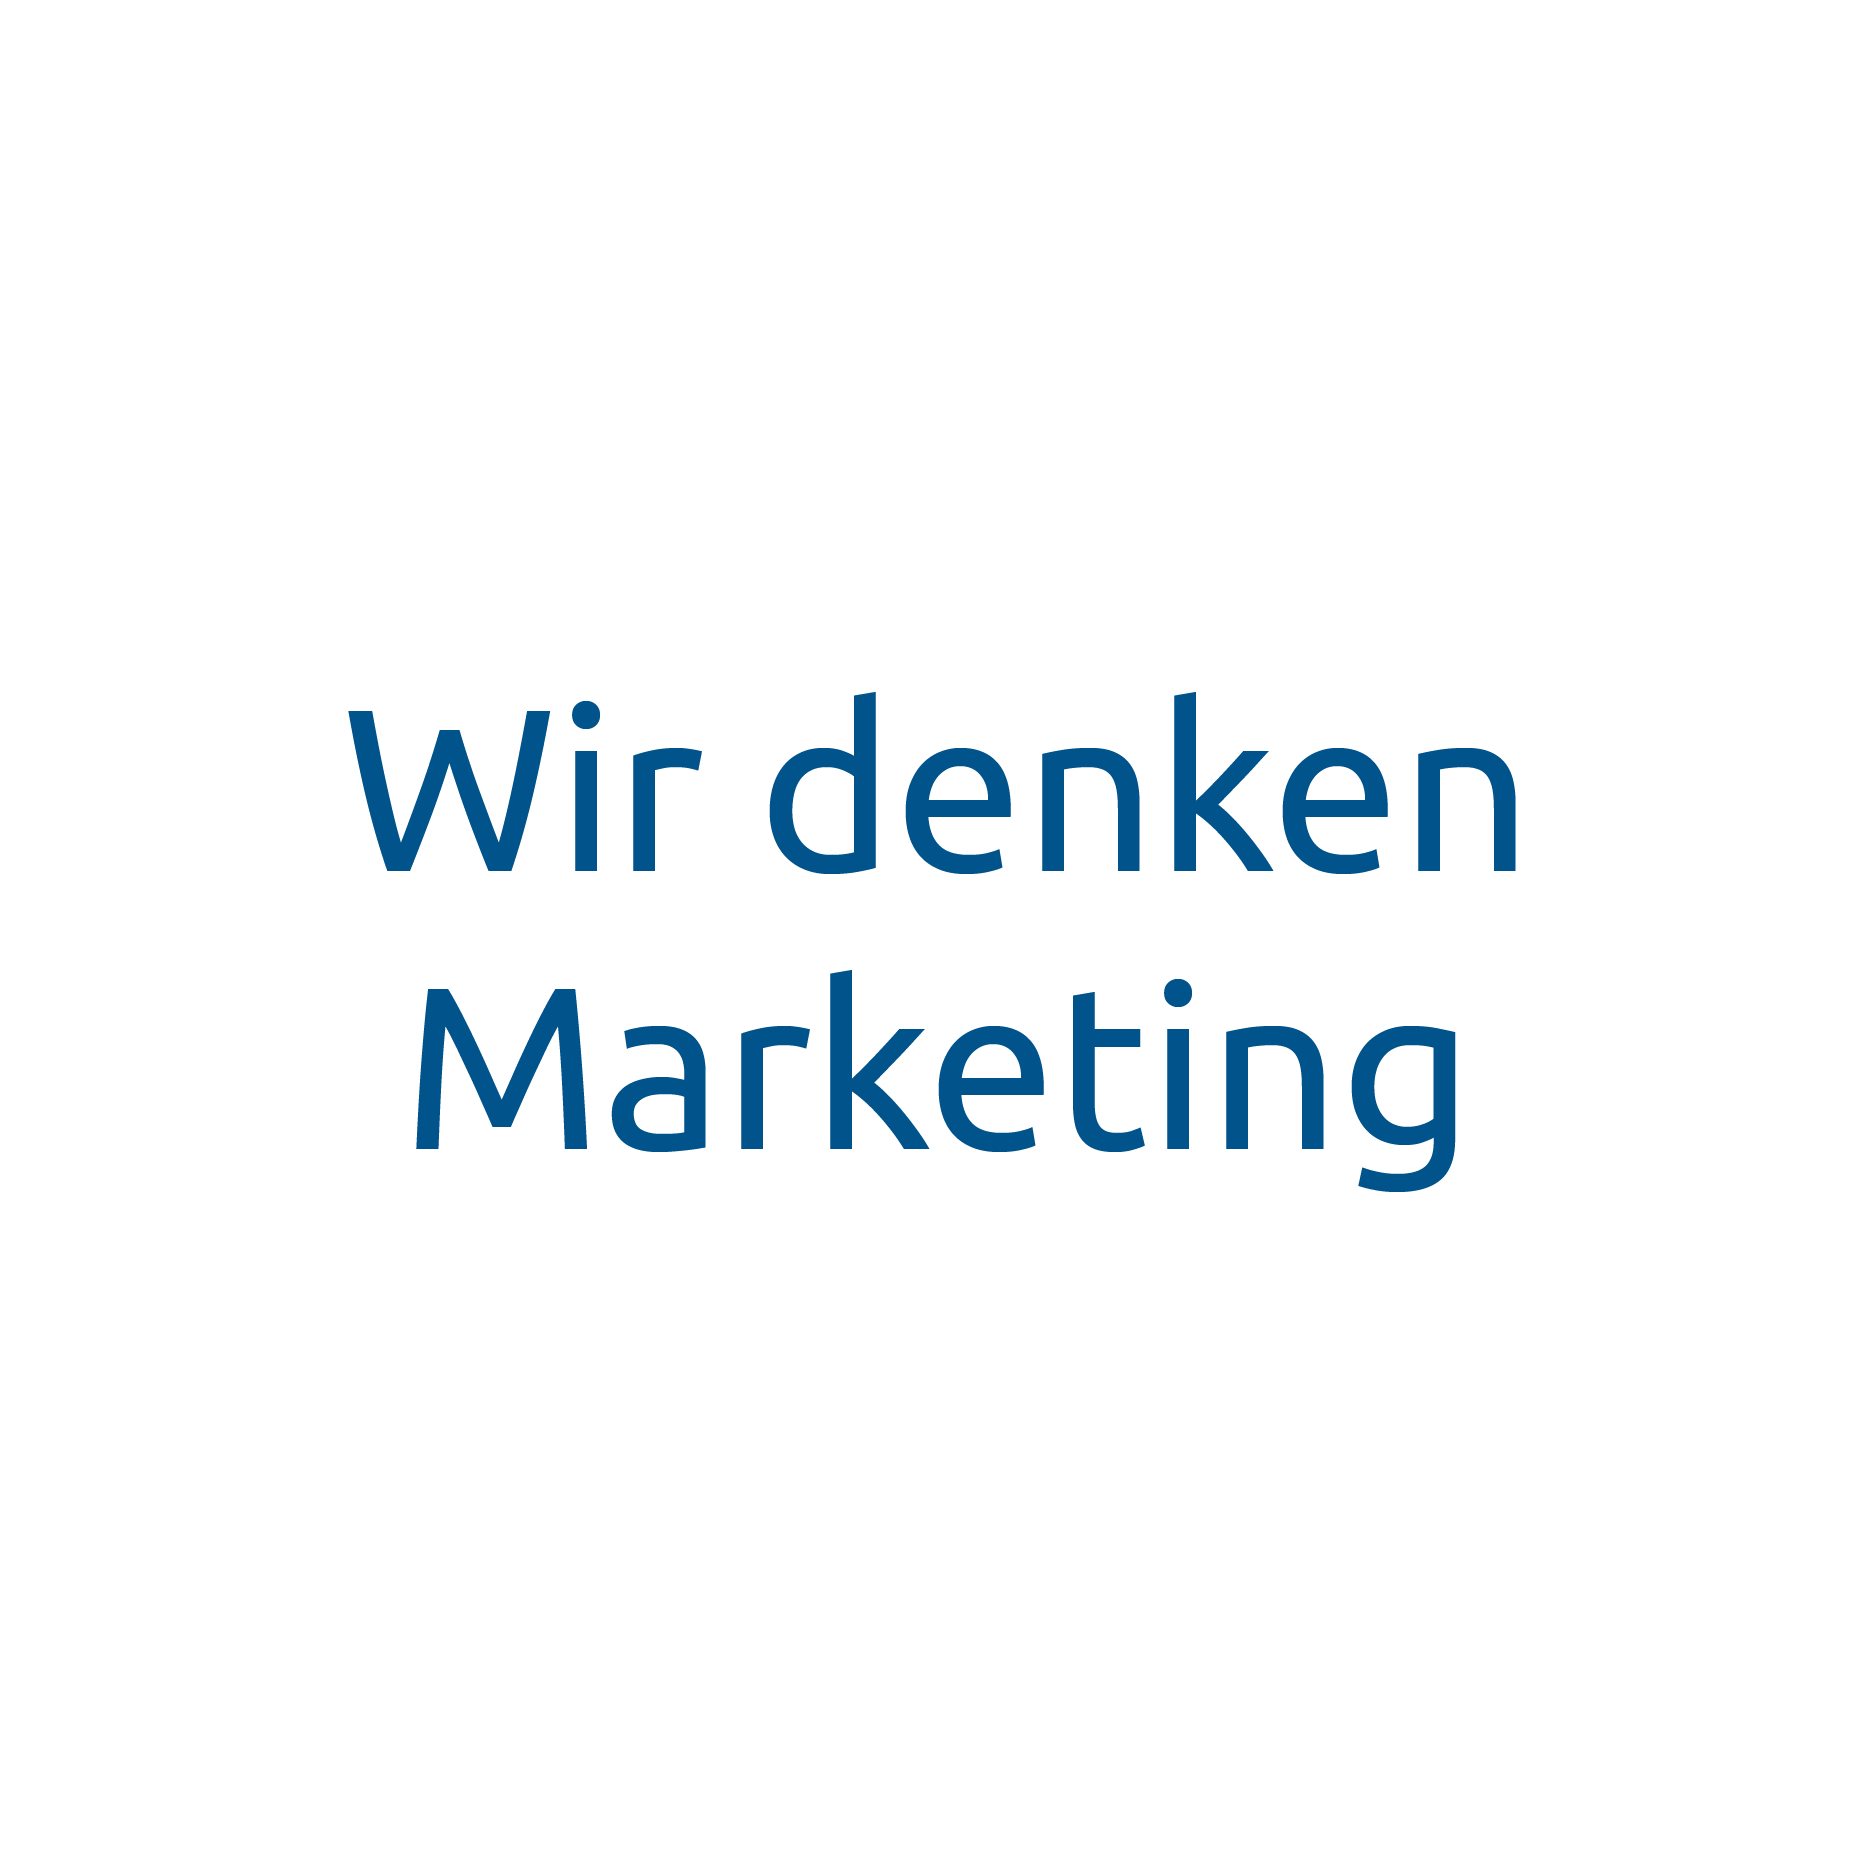 raumprofil Marketing - Wir denken Marketing